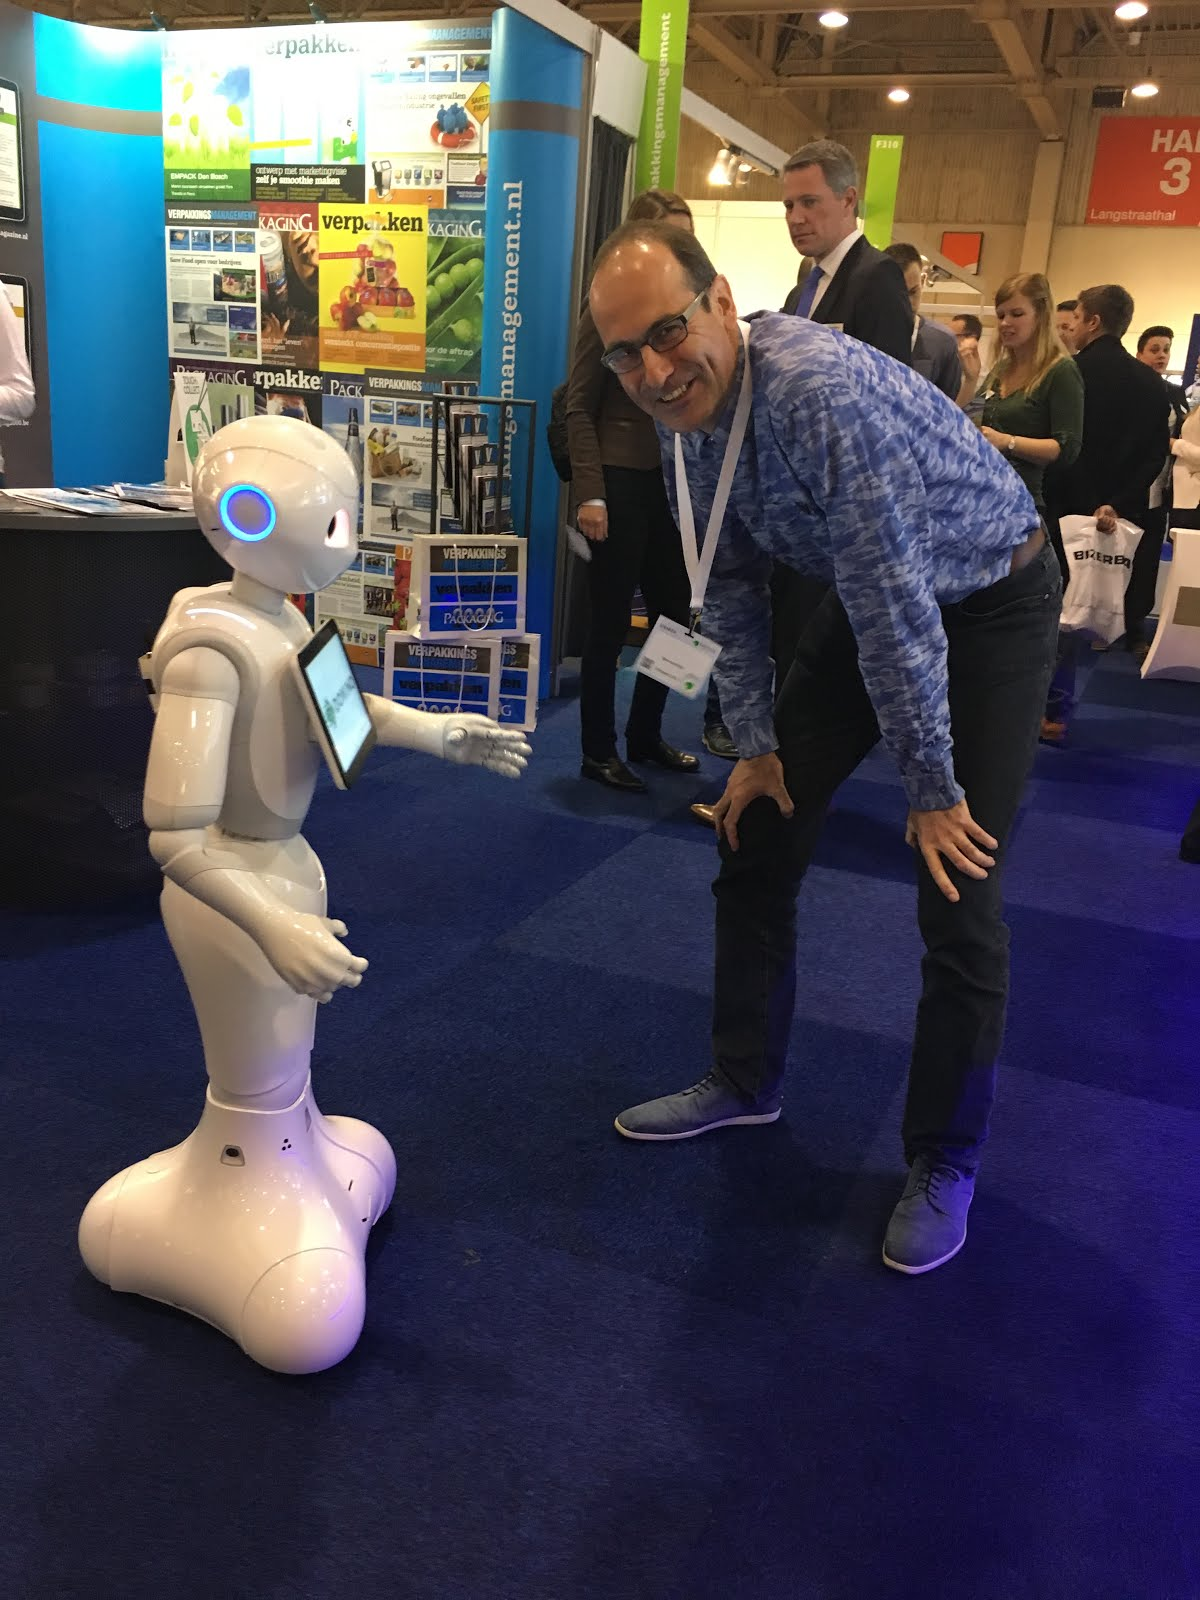 Robot Pepper en ik